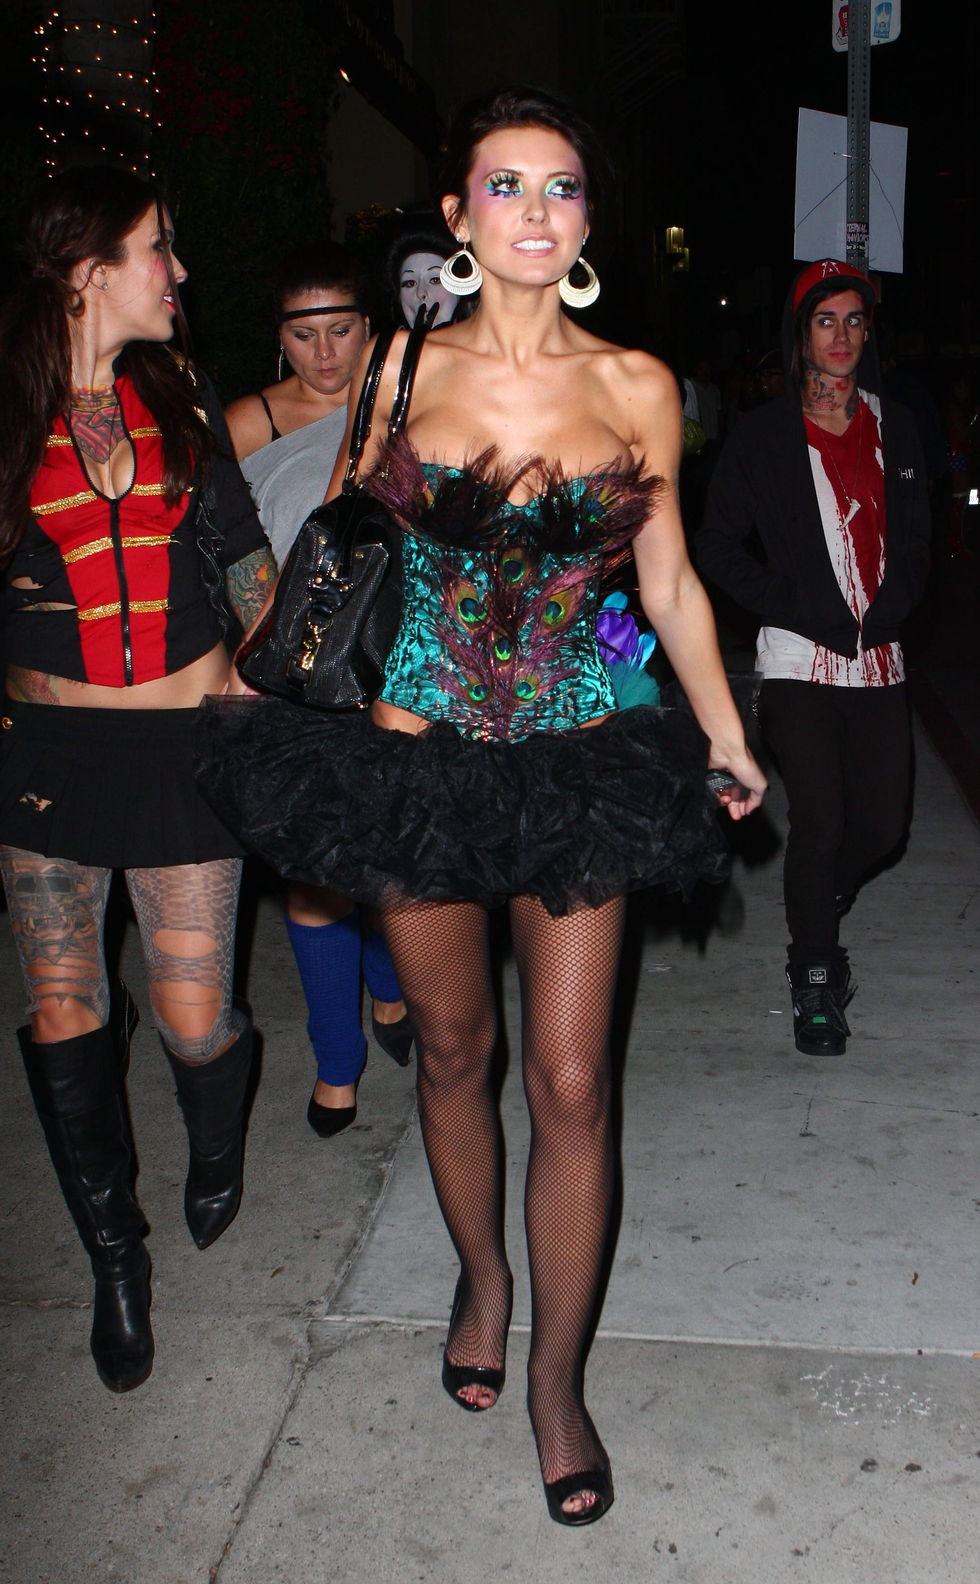 audrina patridge halloween 2008 party in hollywood 01 - Halloween Parties In Hollywood